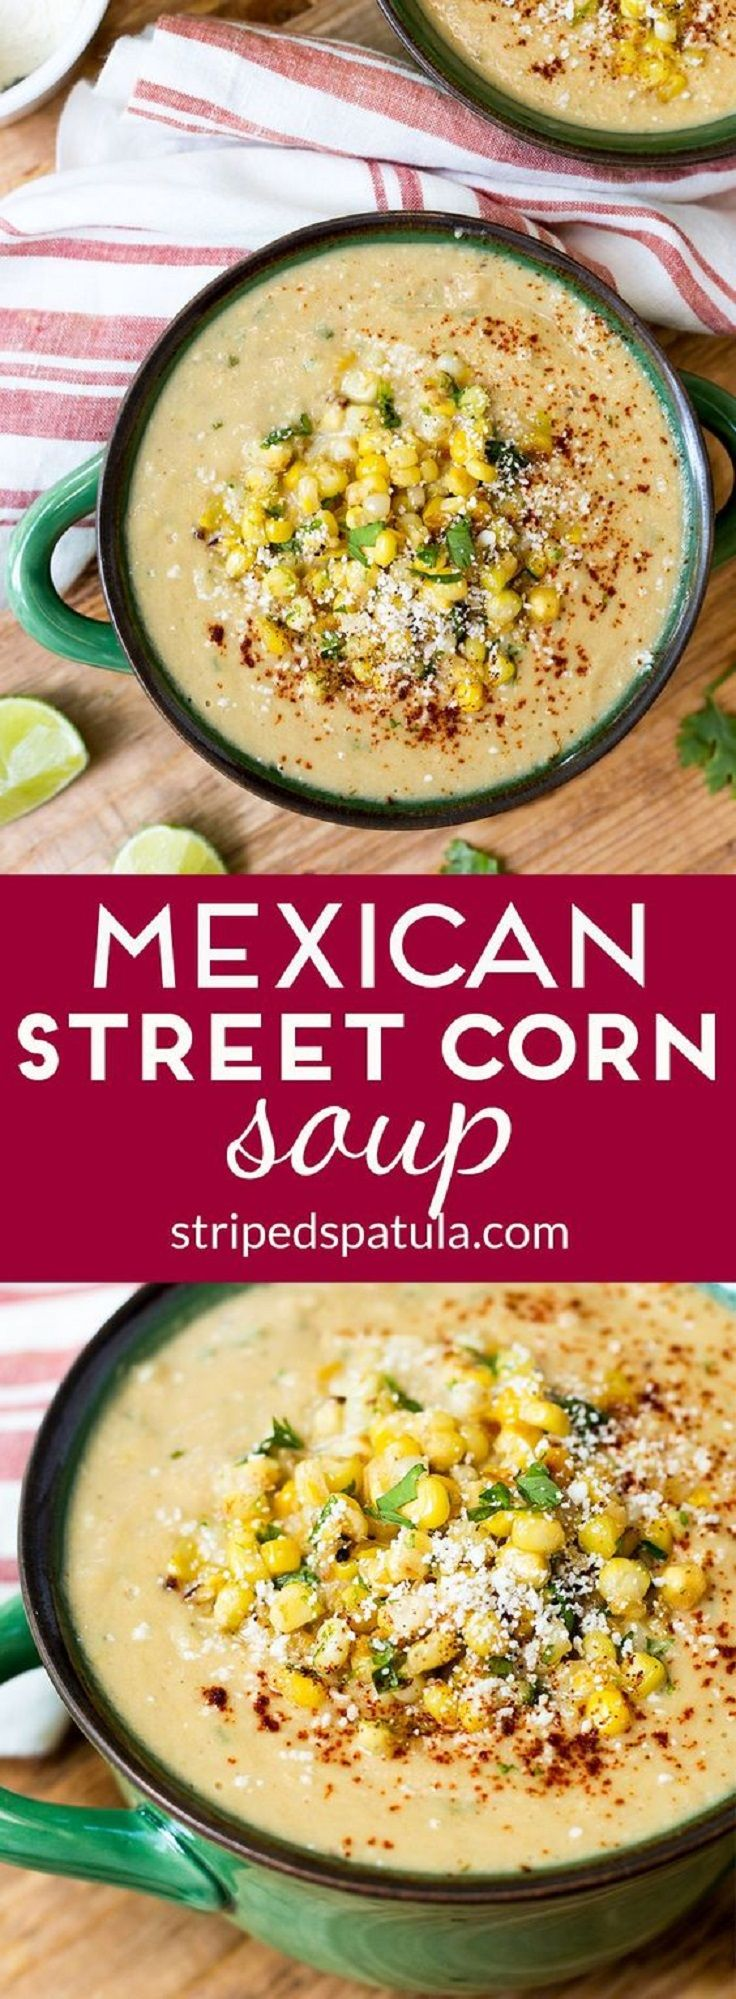 Mexican Street Corn Soup - 15 Recommended Vegetarian Recipes That are Ideal for Every Meal